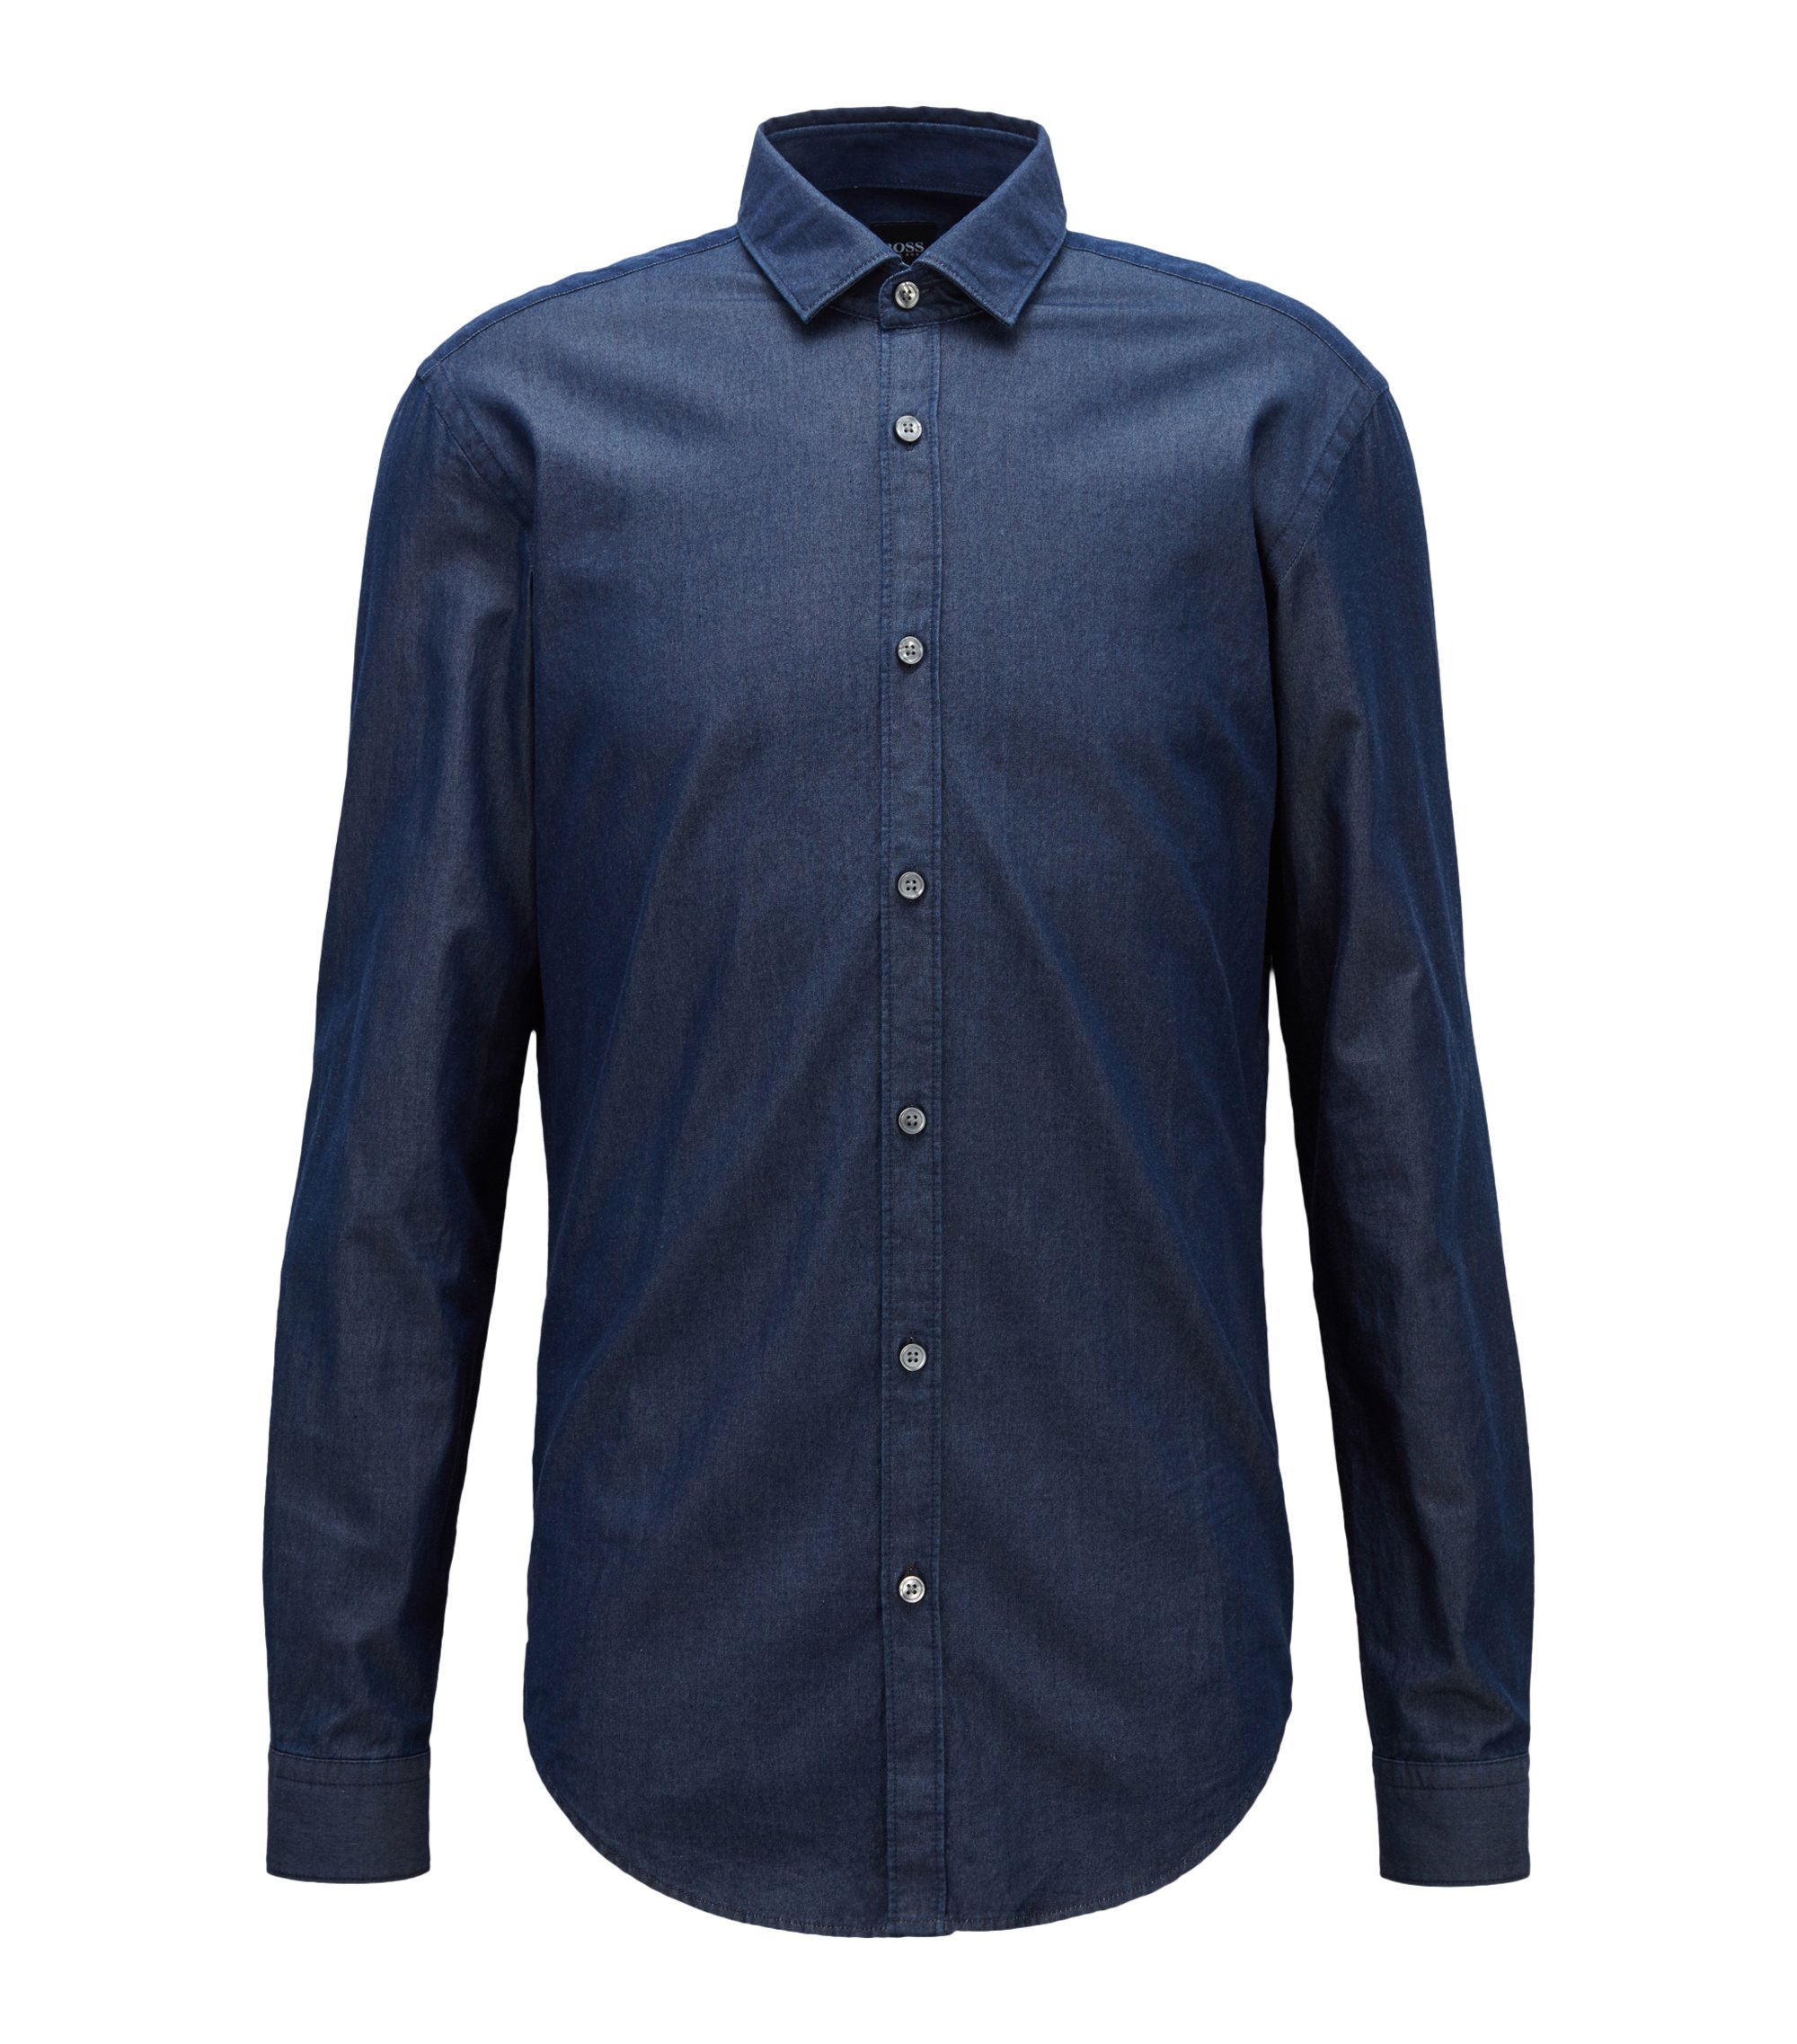 Camicia casual slim fit in twill di denim indaco, Blu scuro